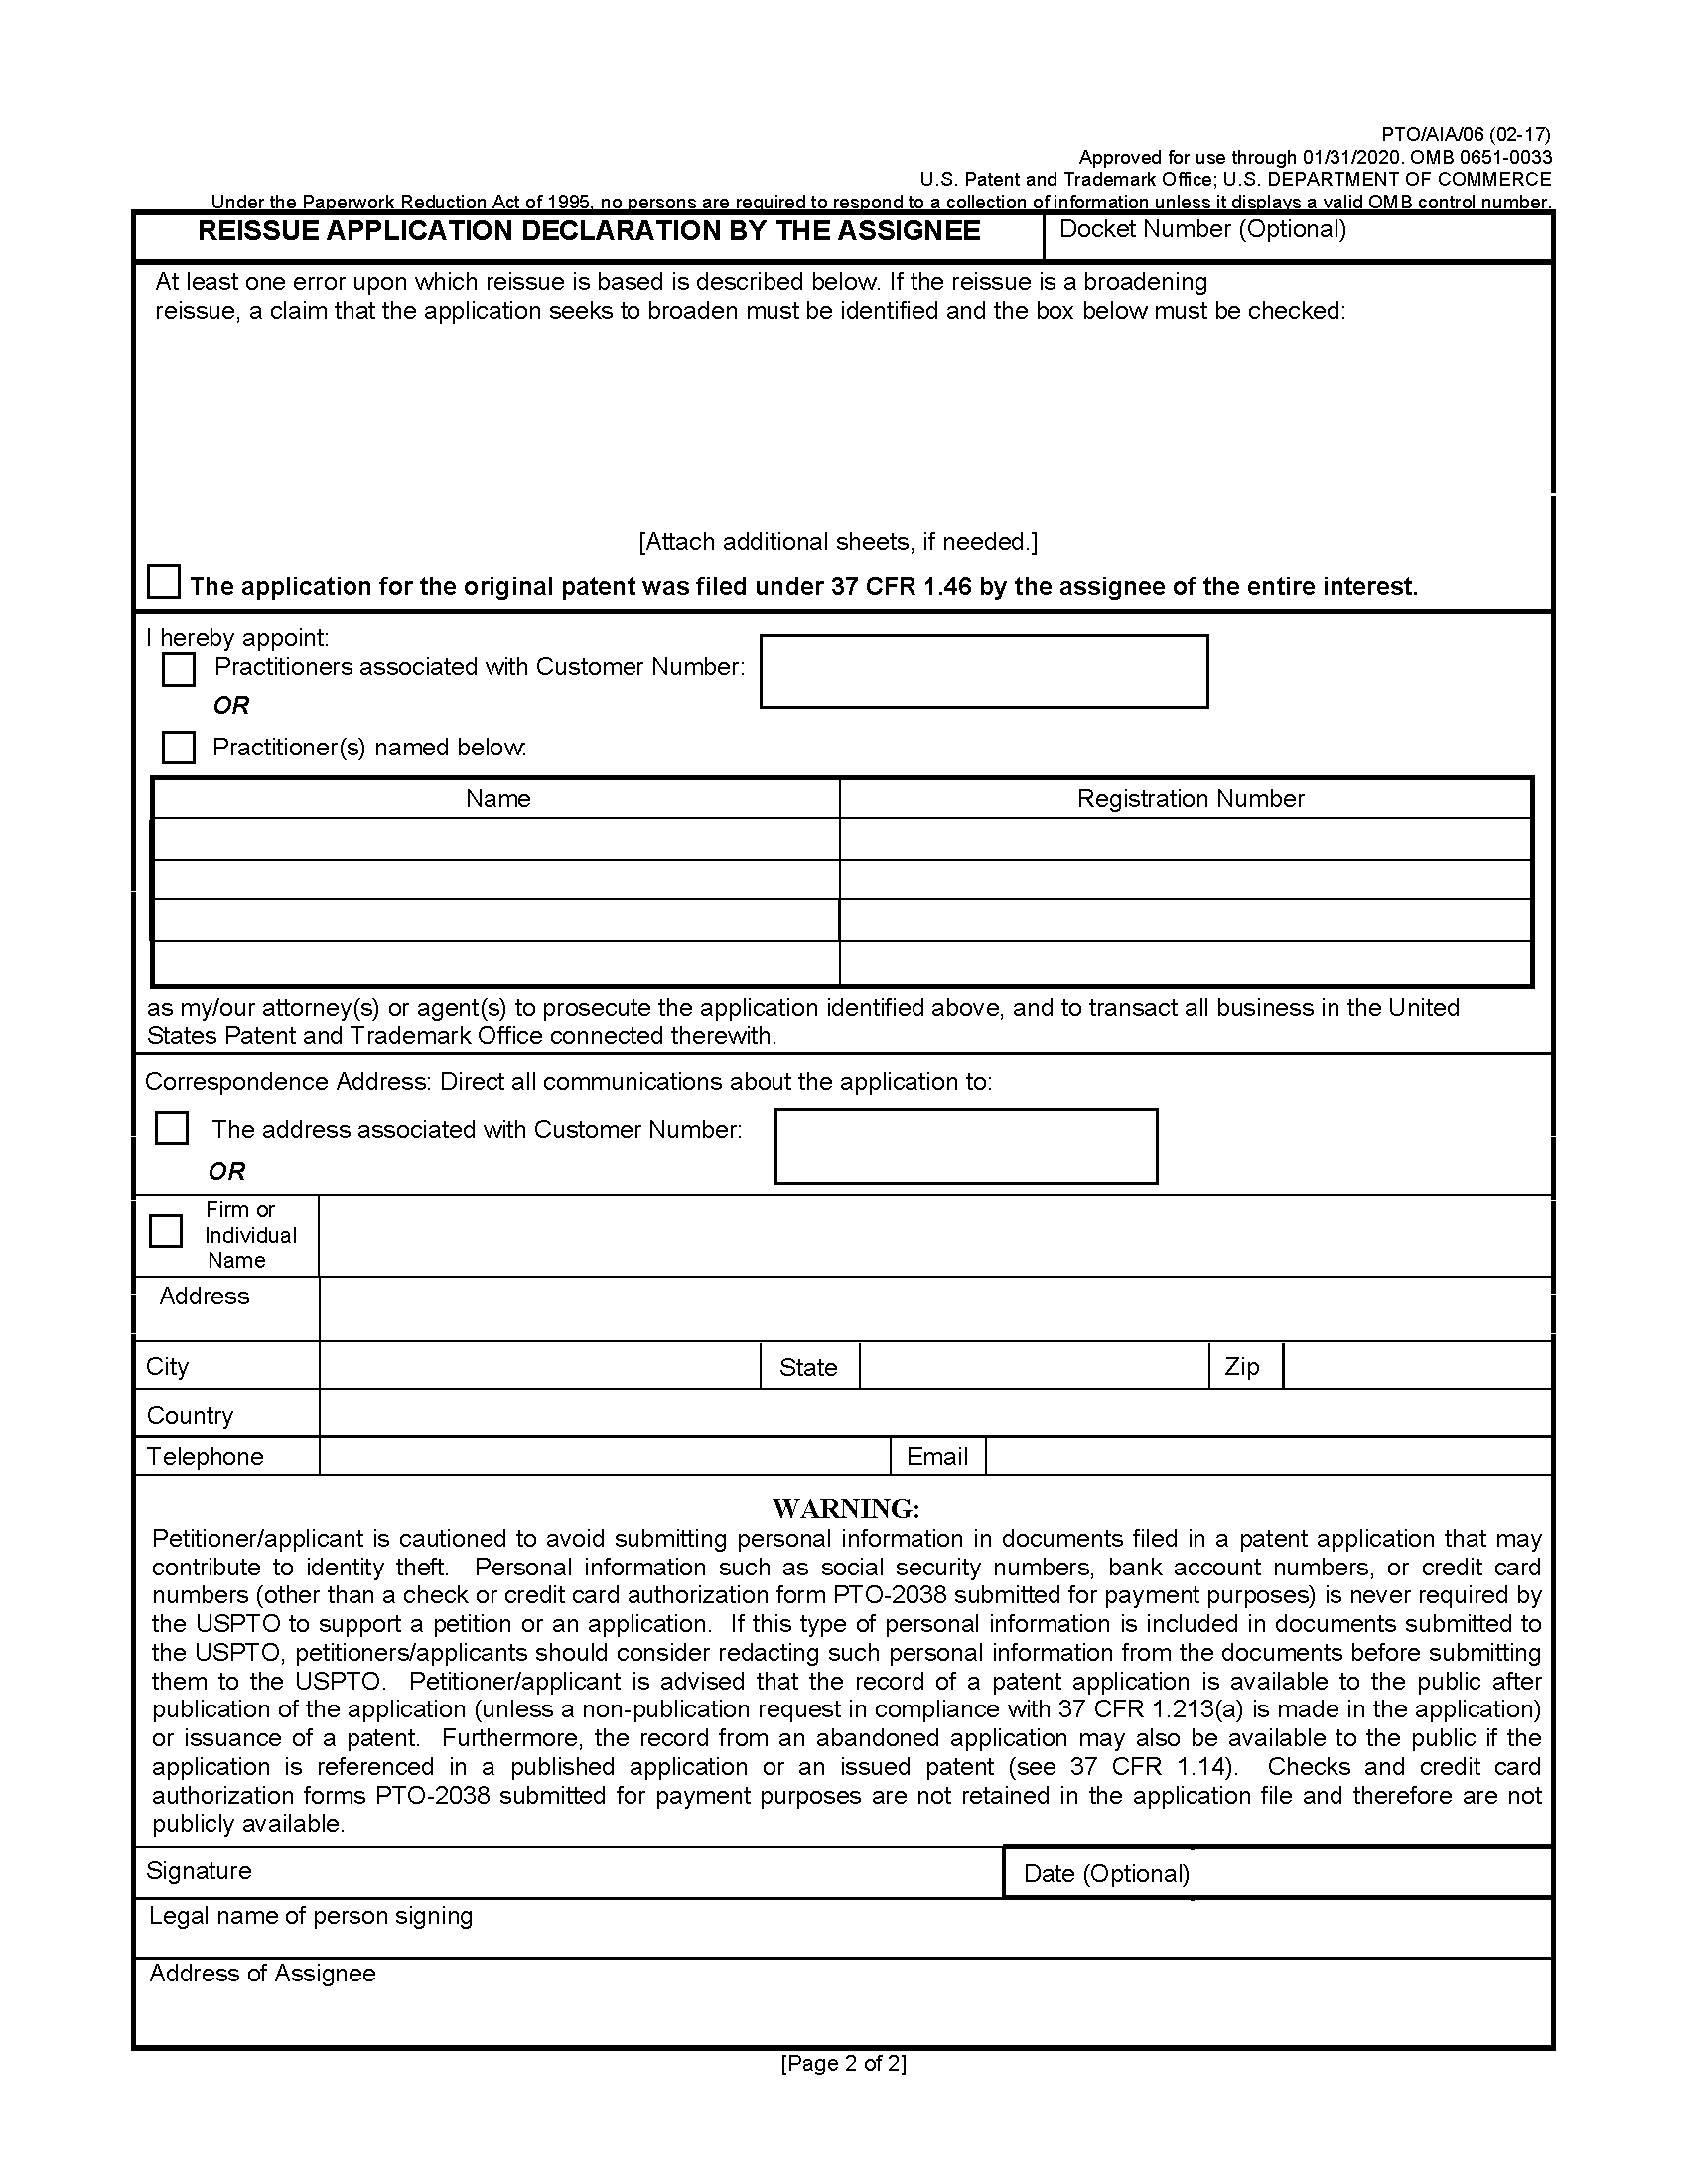 MPEP 1414.01: Reissue Oath or Declaration in Reissue Application ...